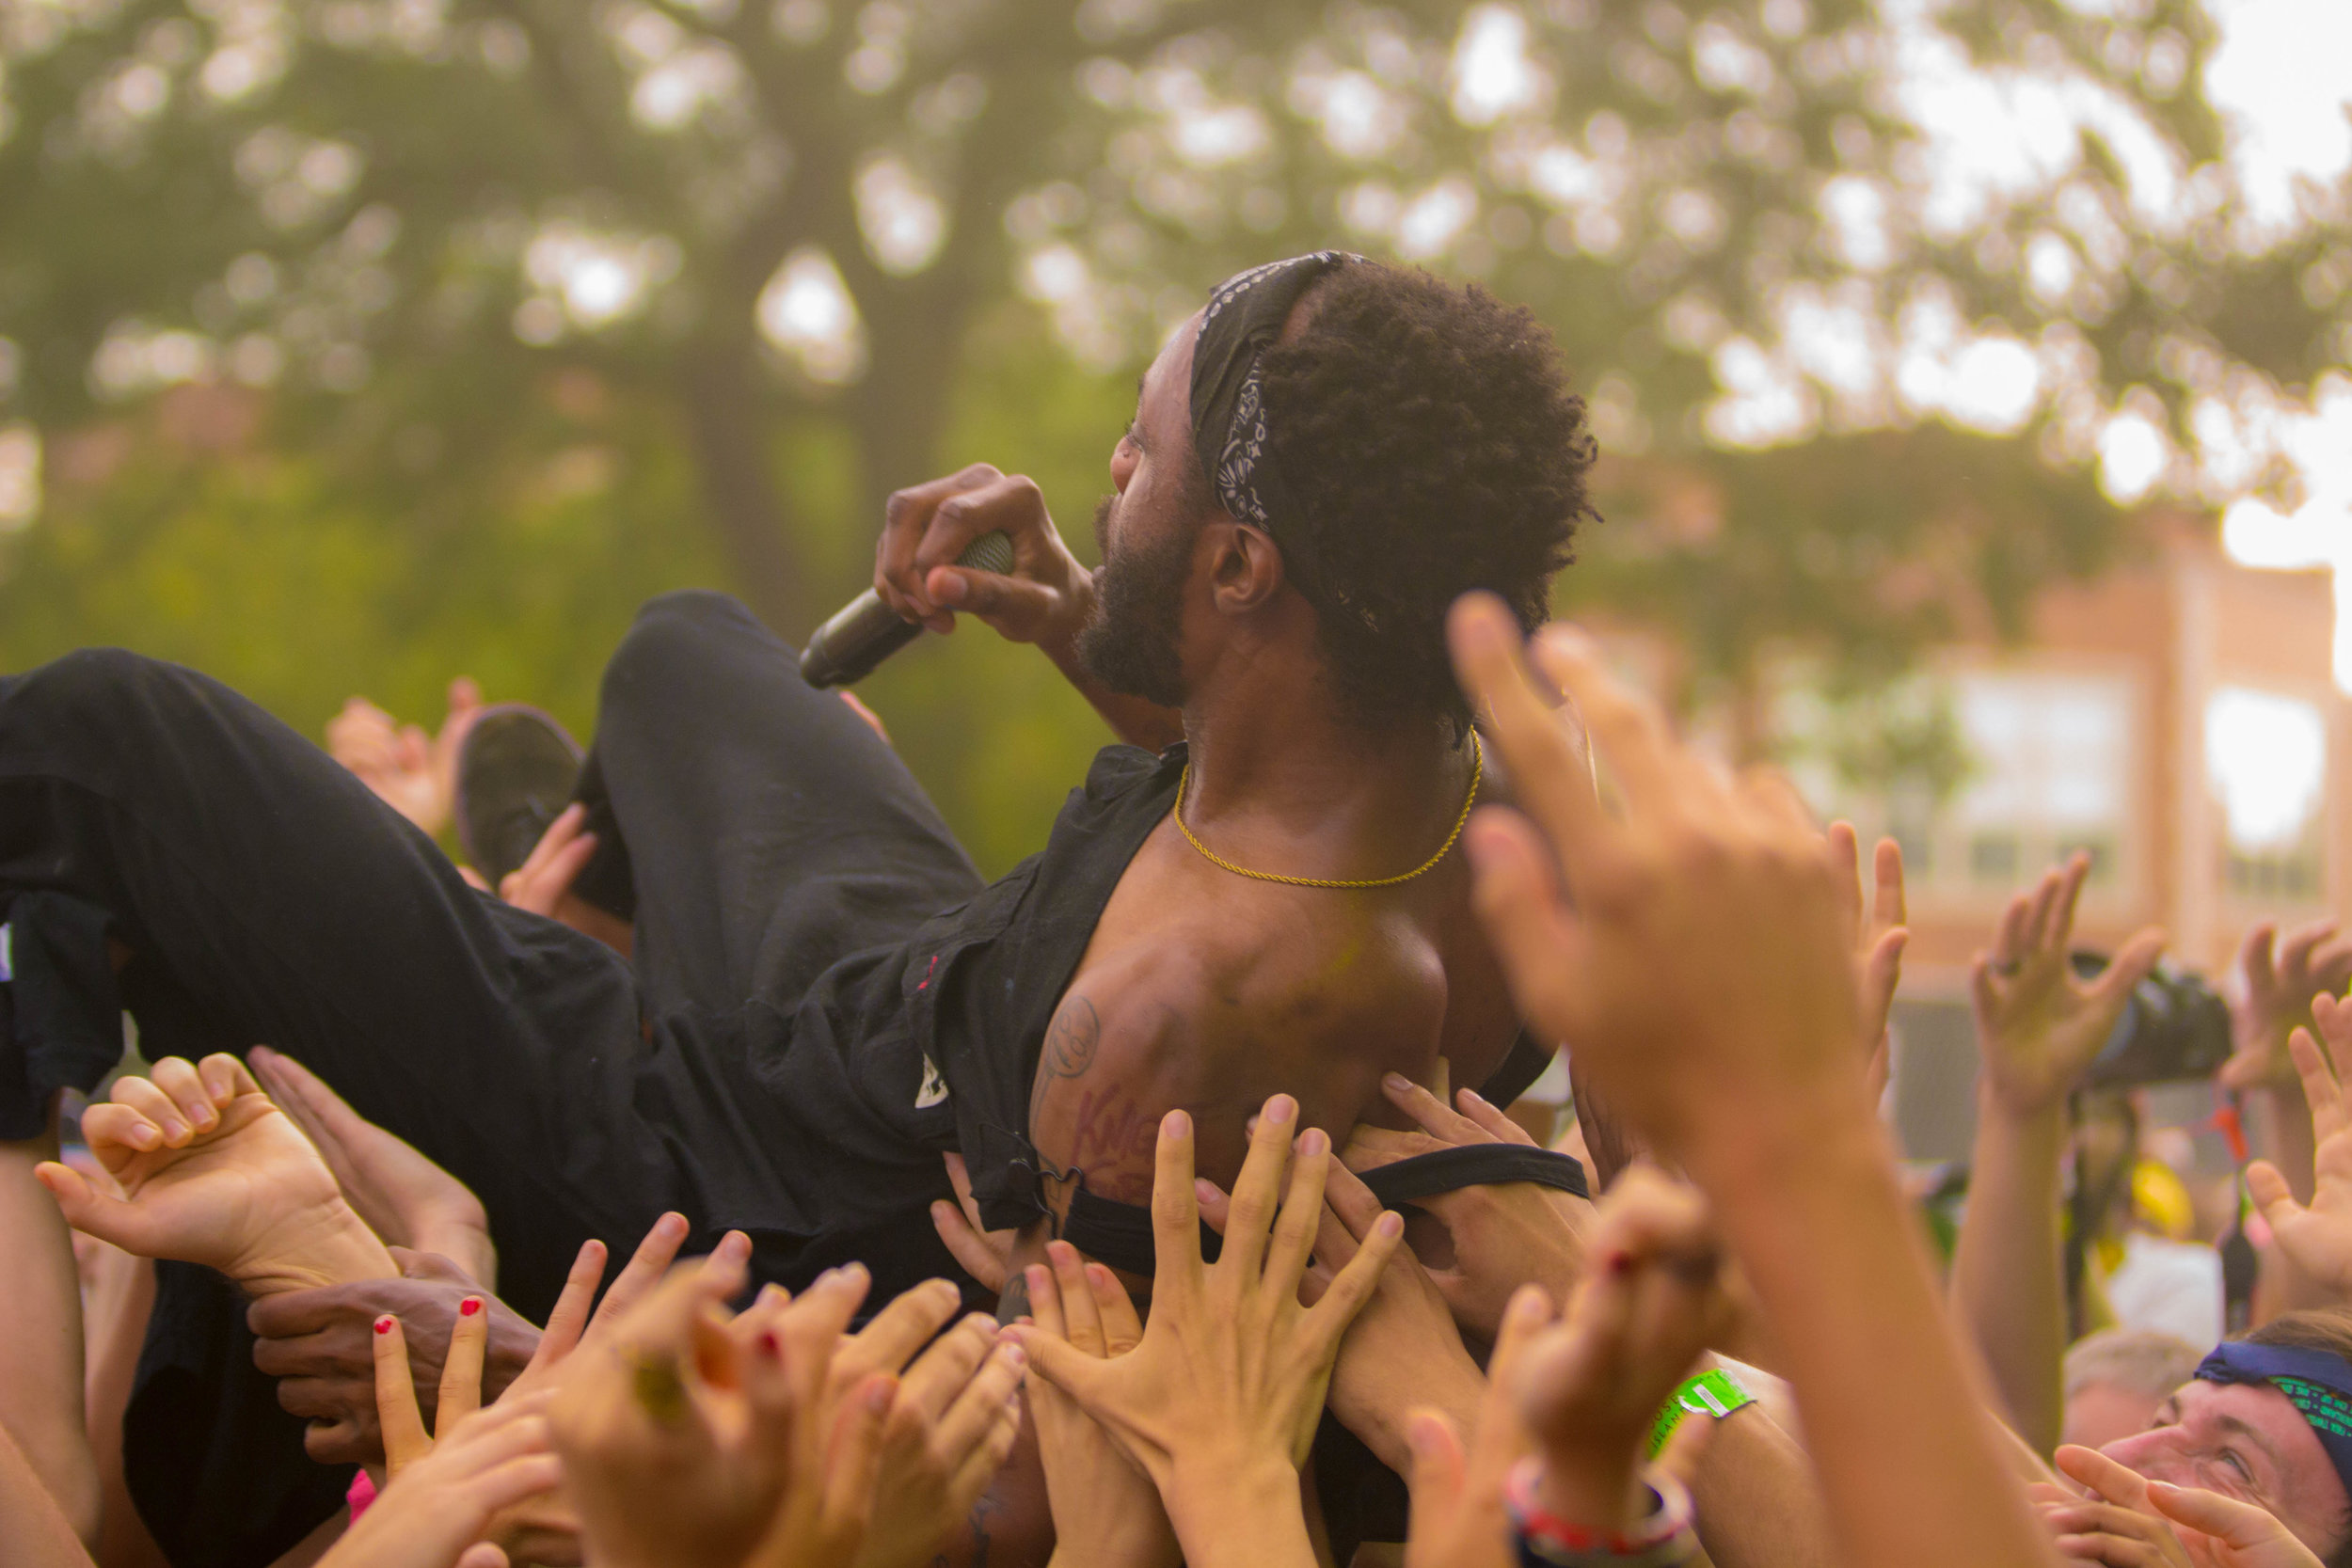 JPEGMAFIA on one of his many trips into the crowd